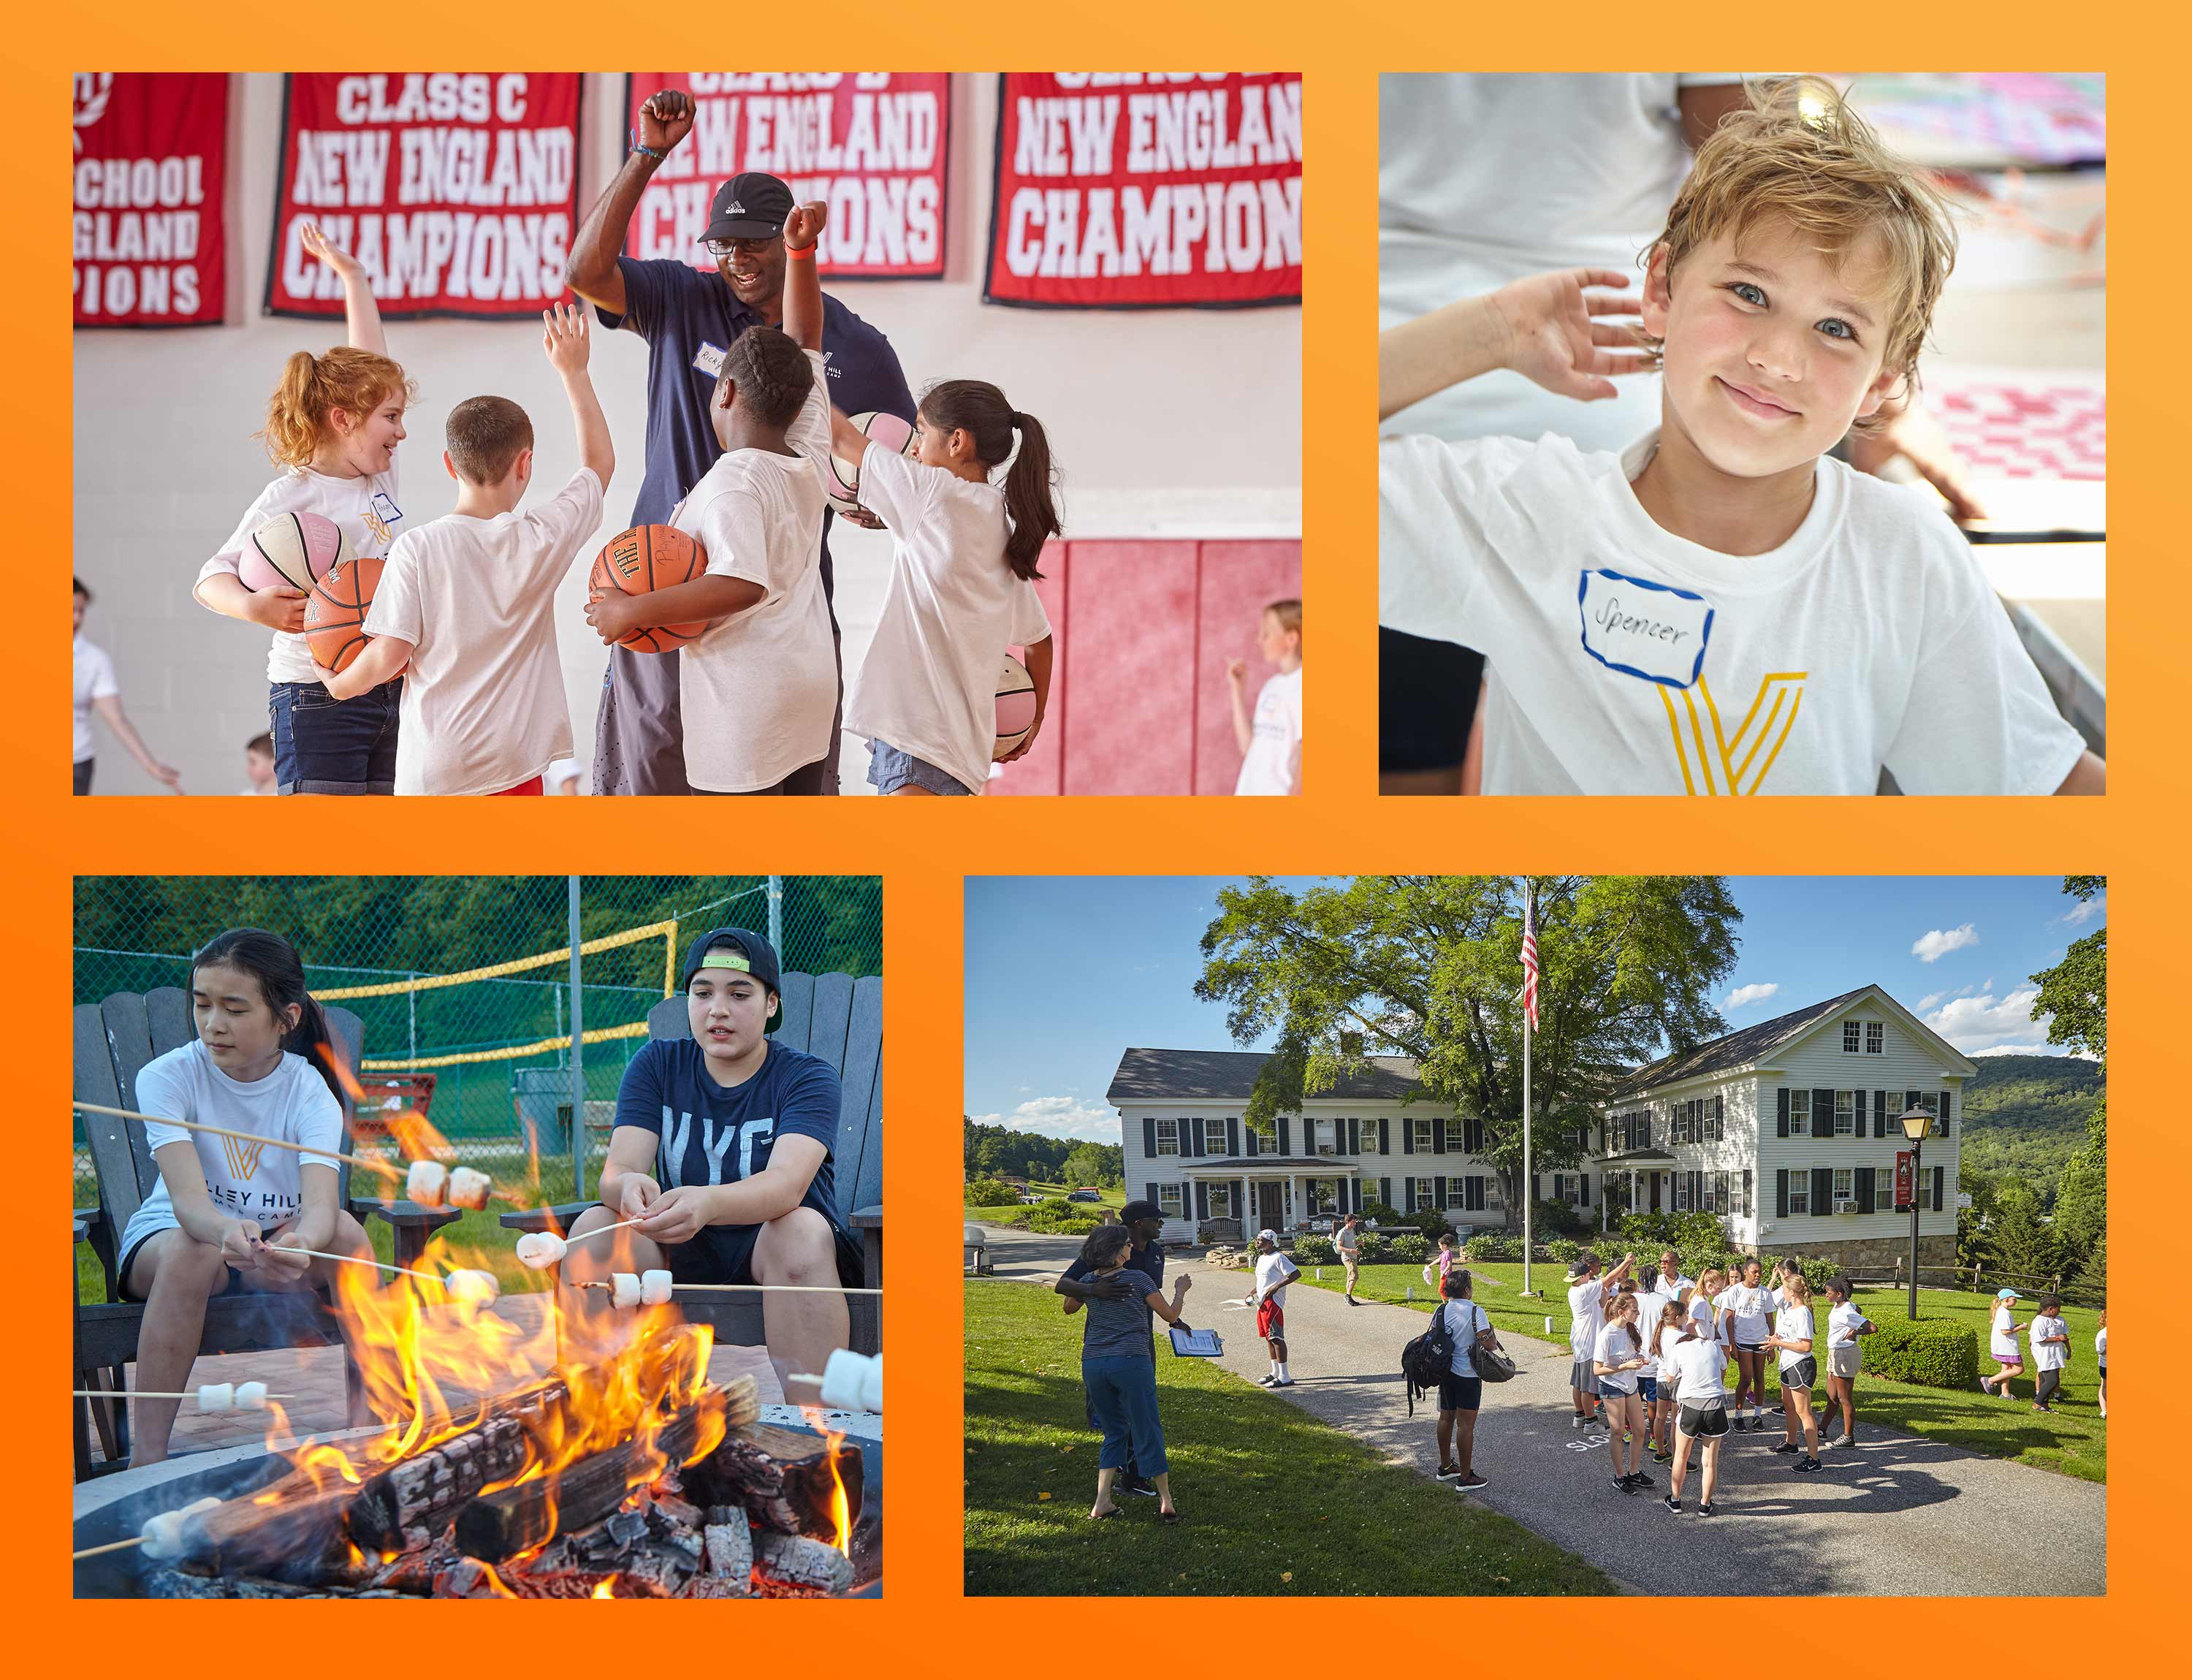 Photos of basketball players, art camp, roasting marshmallows, and location of Valley Hill